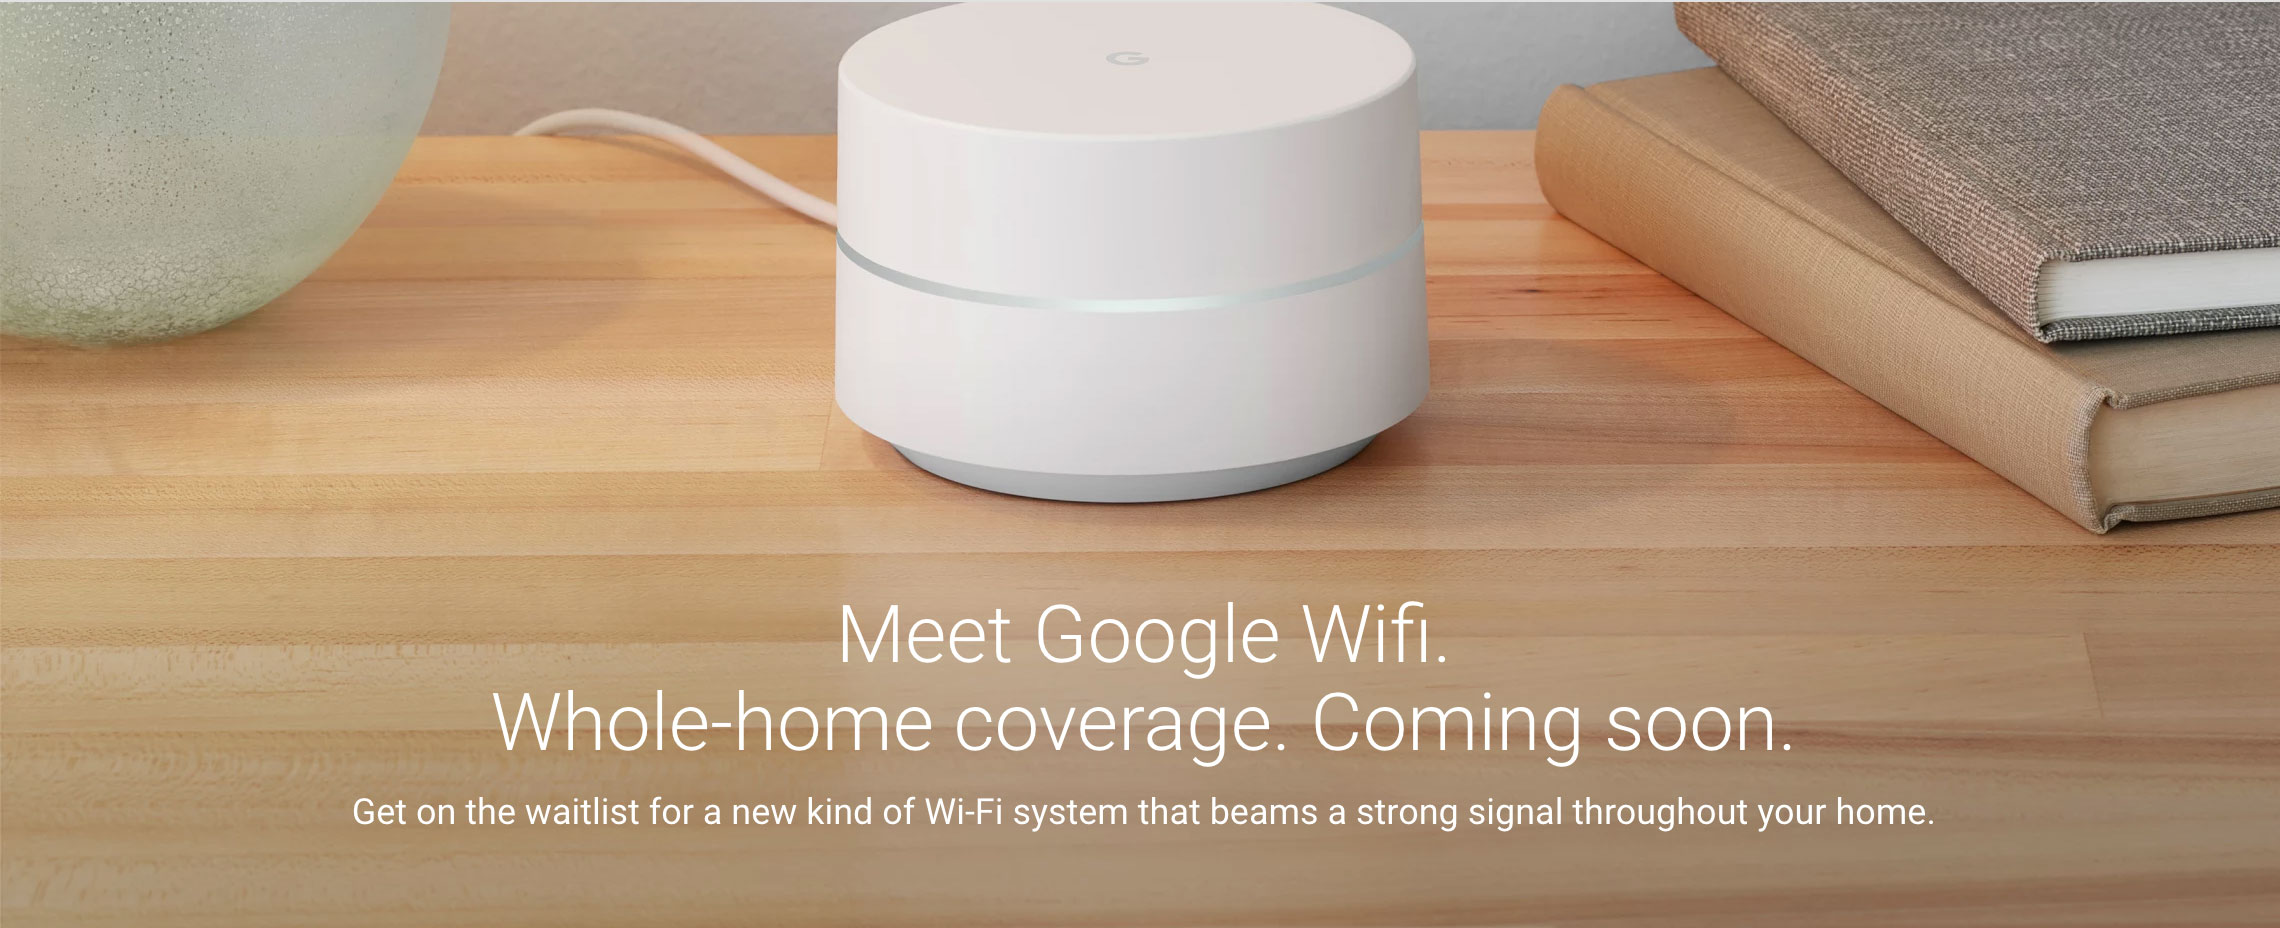 google ac wifi router